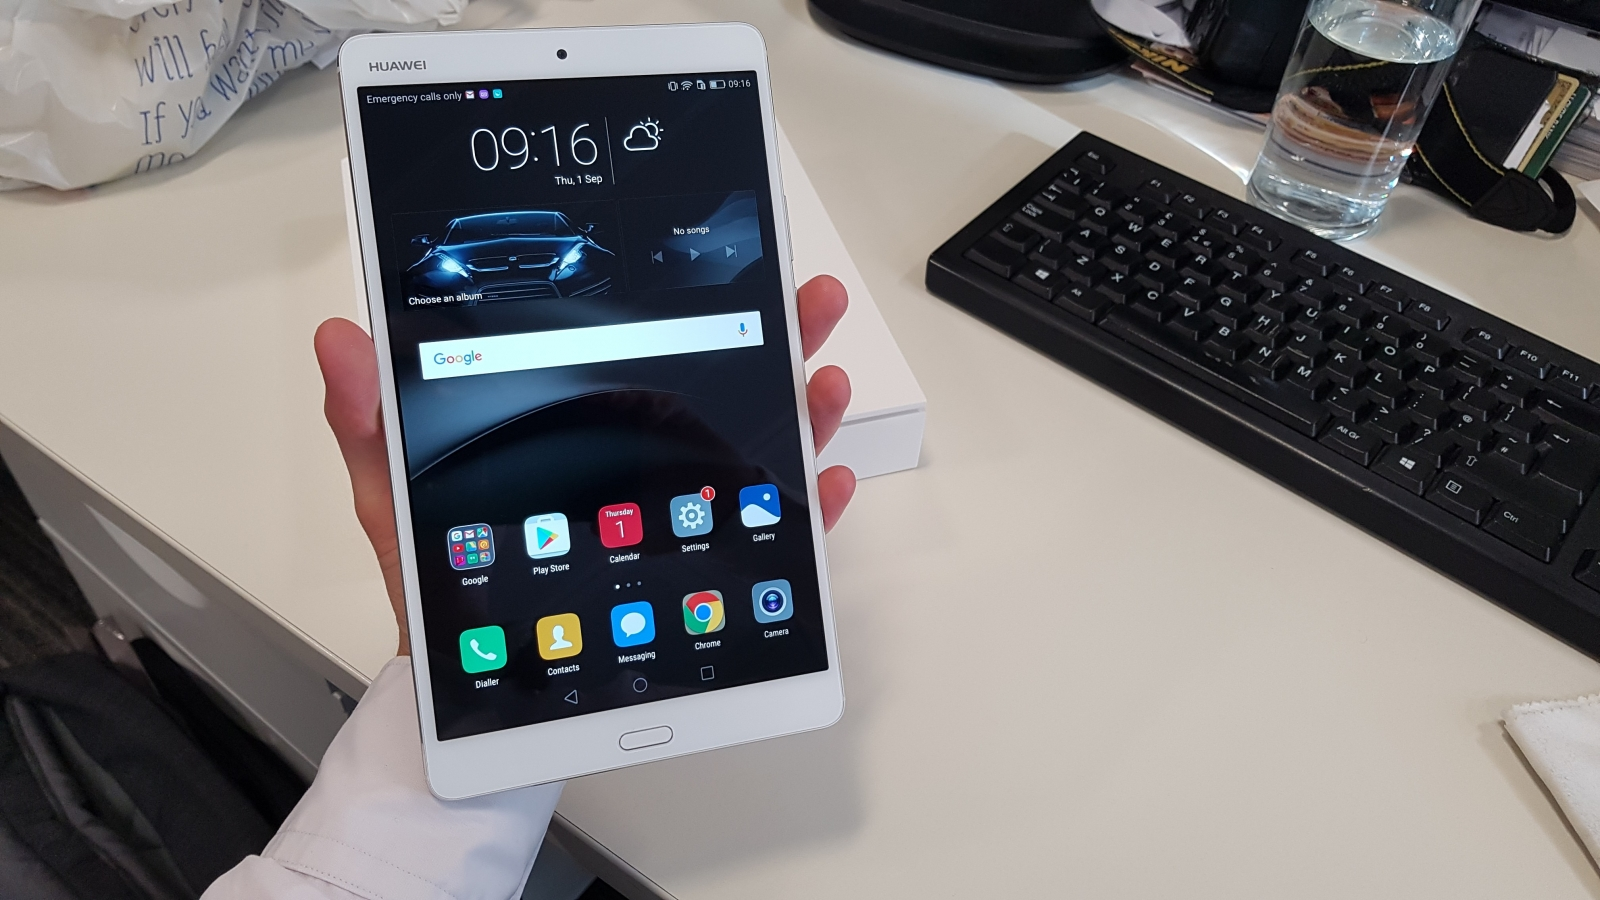 Ifa 2016 Ifa 2016: Huawei Mediapad M3 Hands-on Review